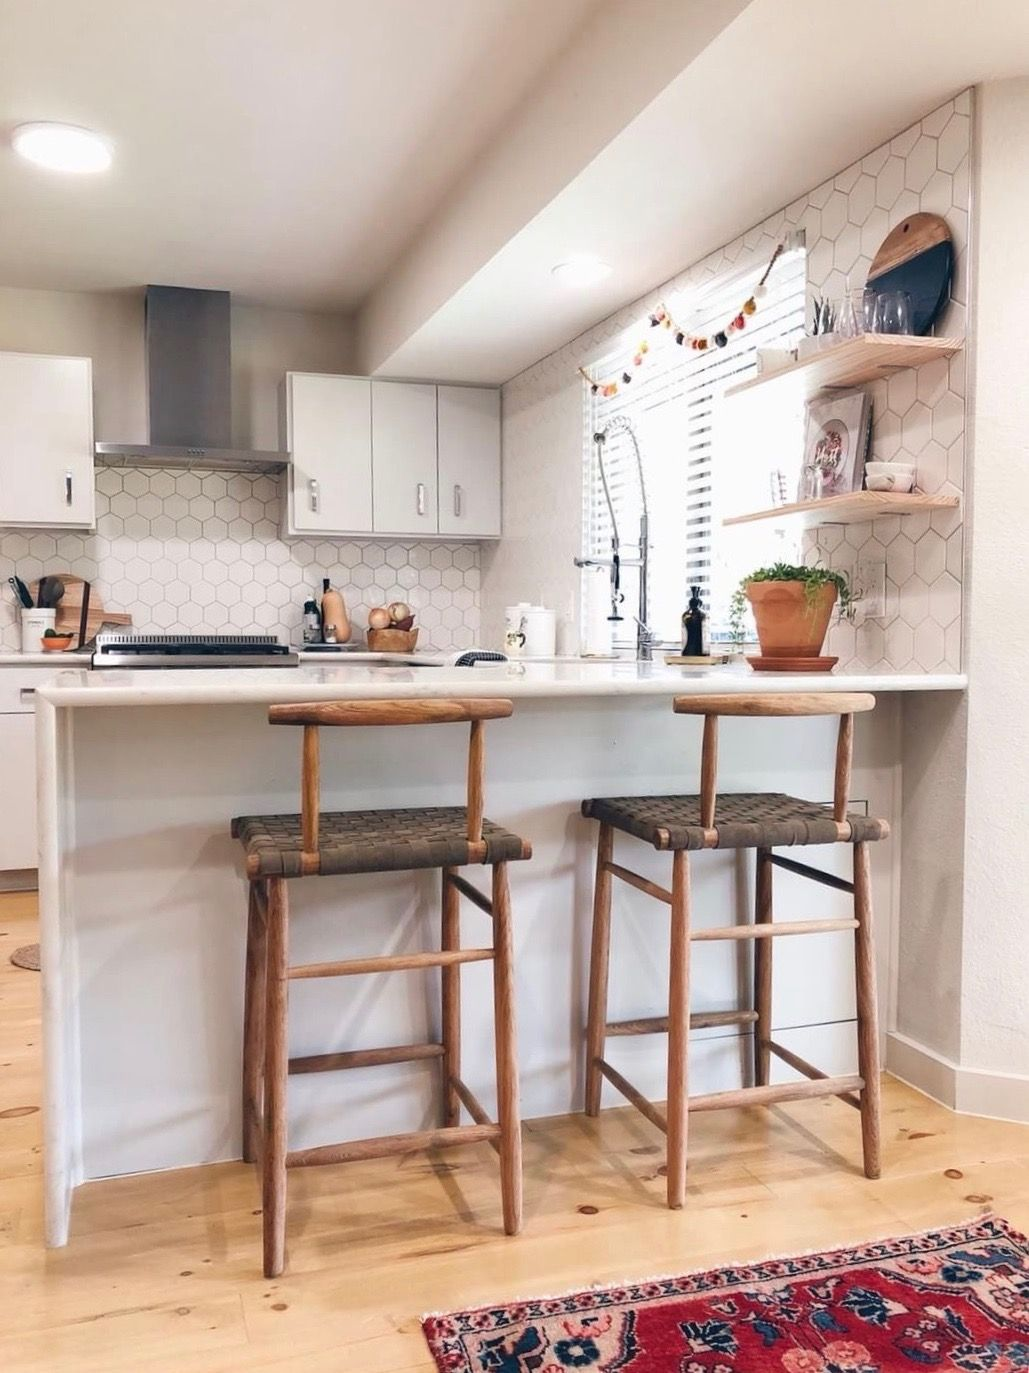 height floating kitchen shelves shelving shelf hanging kaceydurbin house helpful tutorial how determine for the book oak board sky box etc hidden granite support brackets